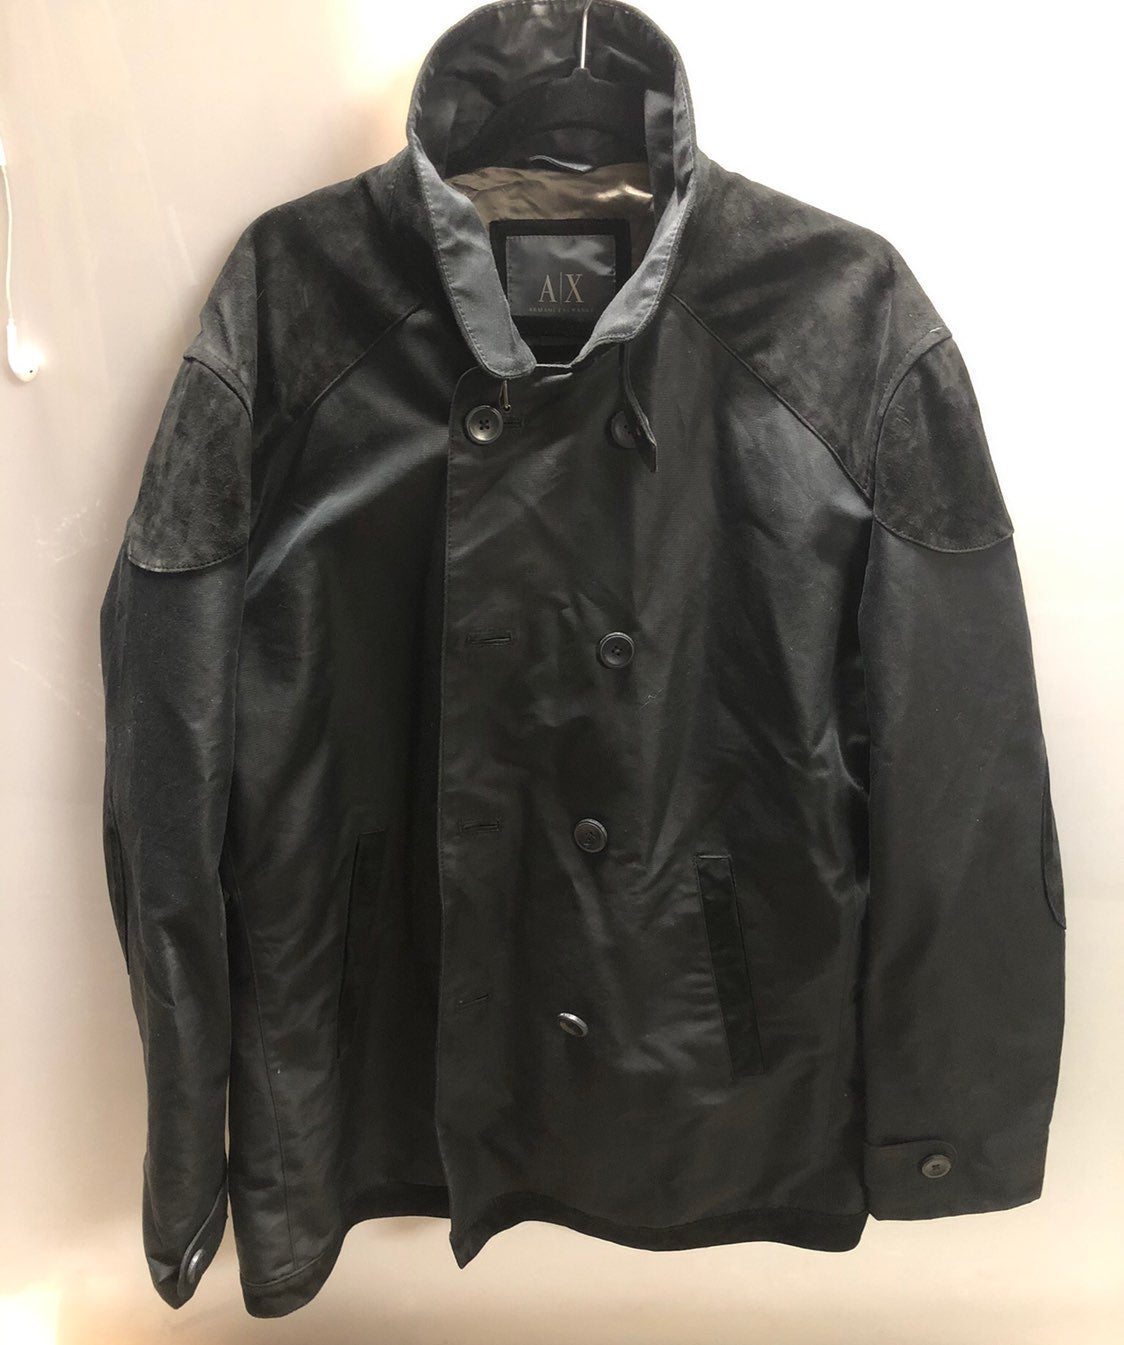 Armani exchange XL fall jacket